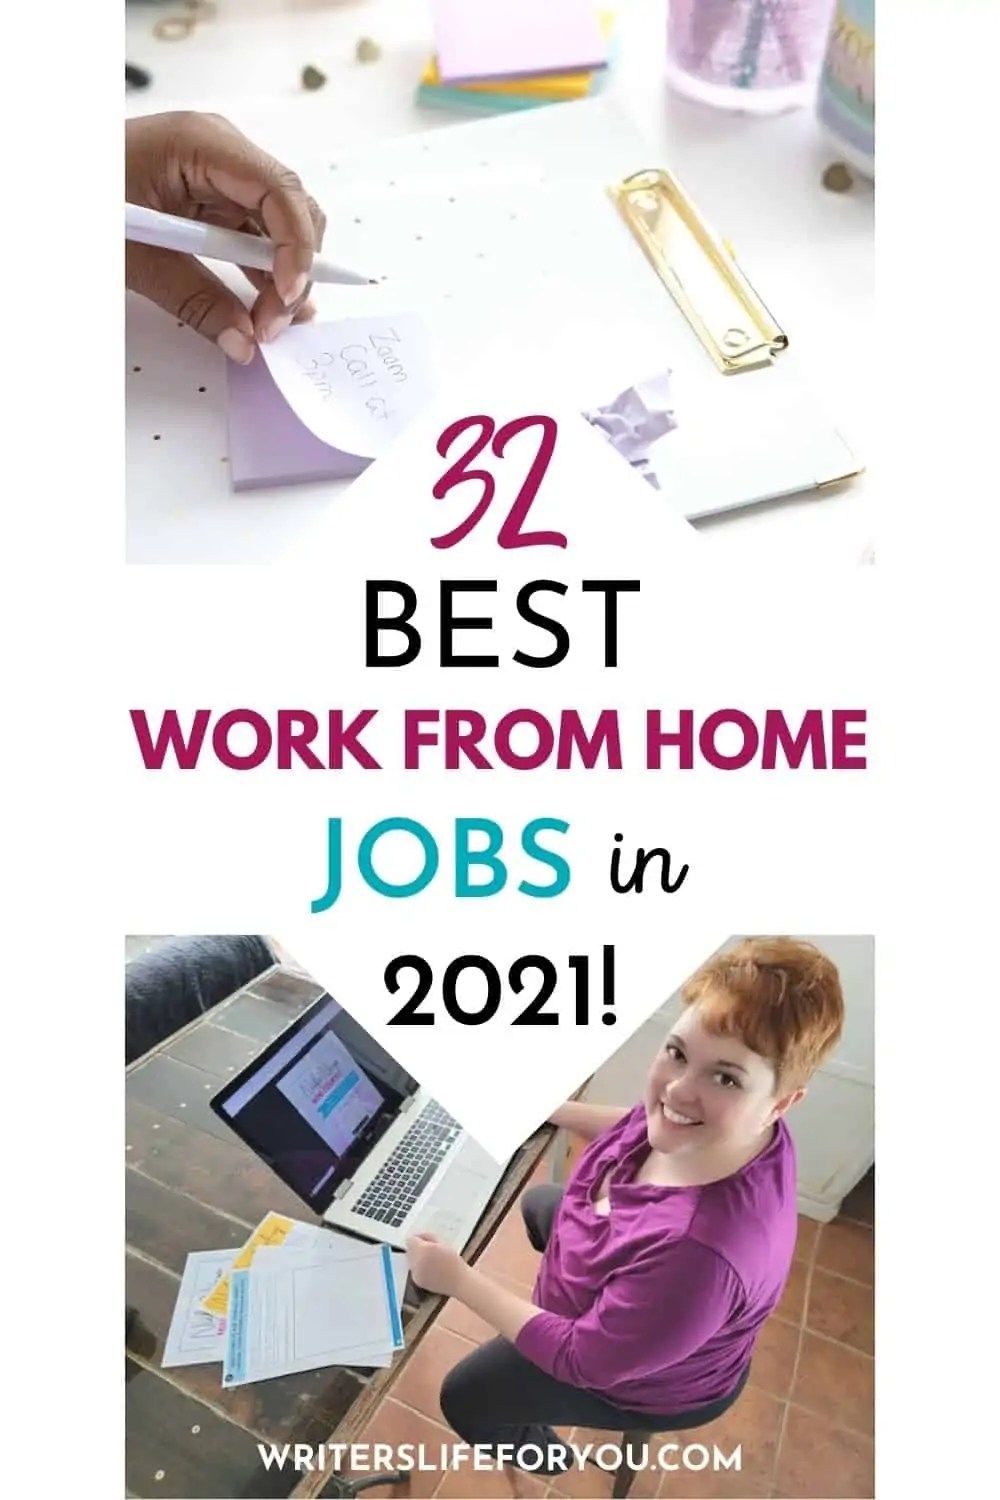 32+ Non-Phone Work From Home Jobs That Will Help You Ditch Your 9-5